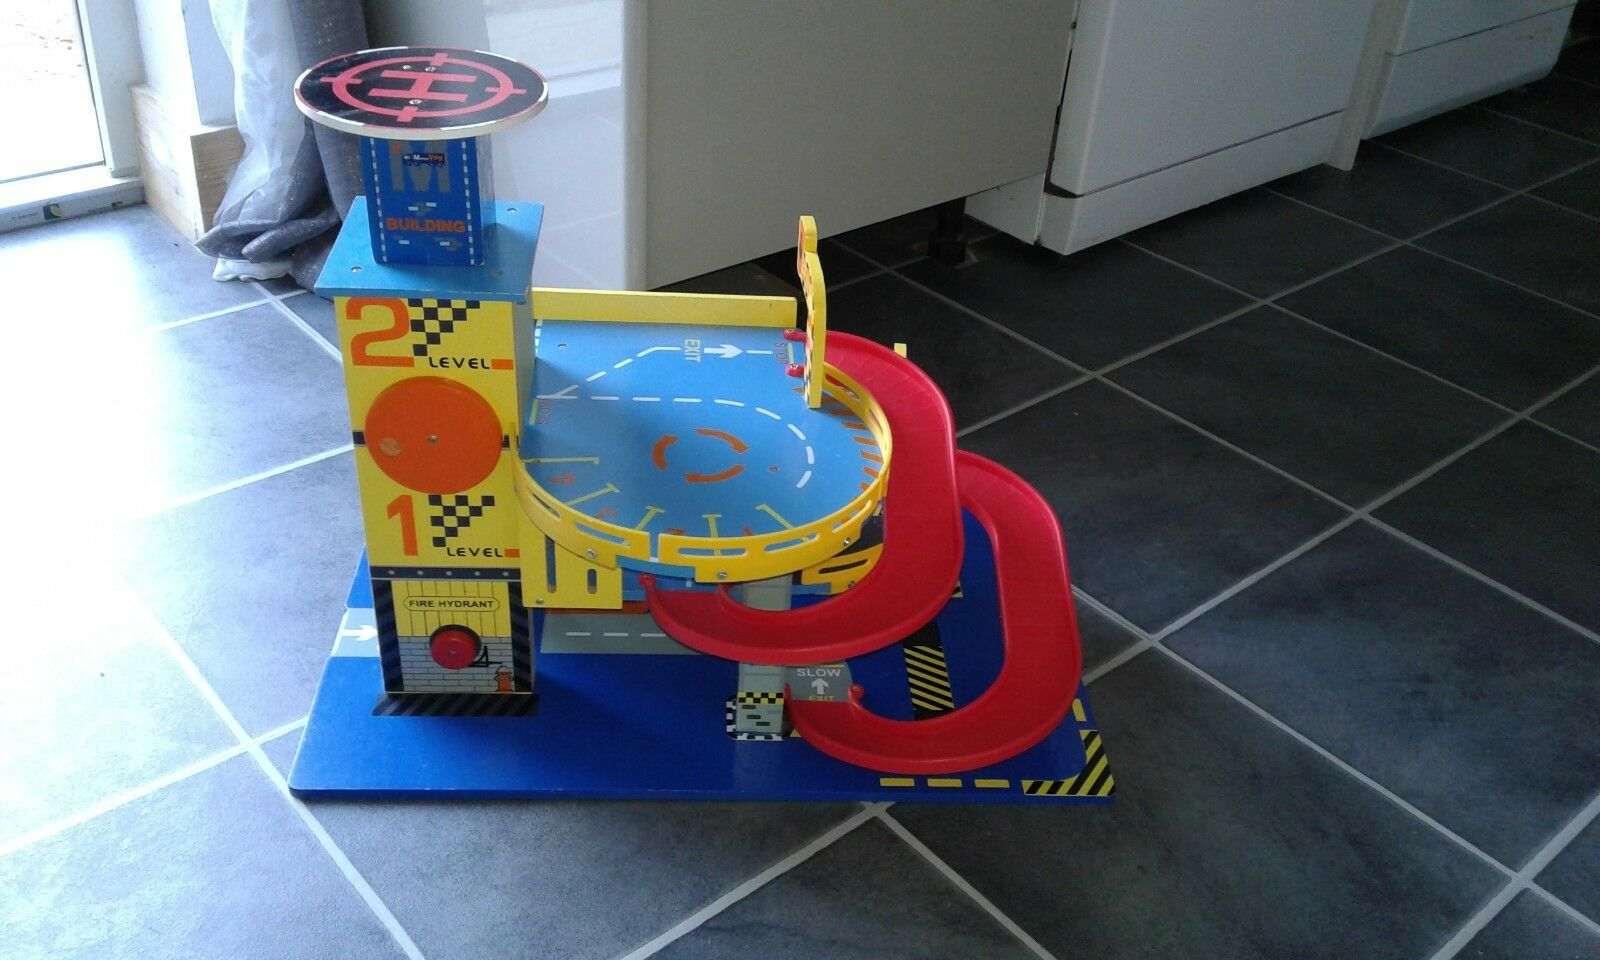 Parking toy,dimentions 60cm x 40cm x 48 cm,used,very good condition, by unknown